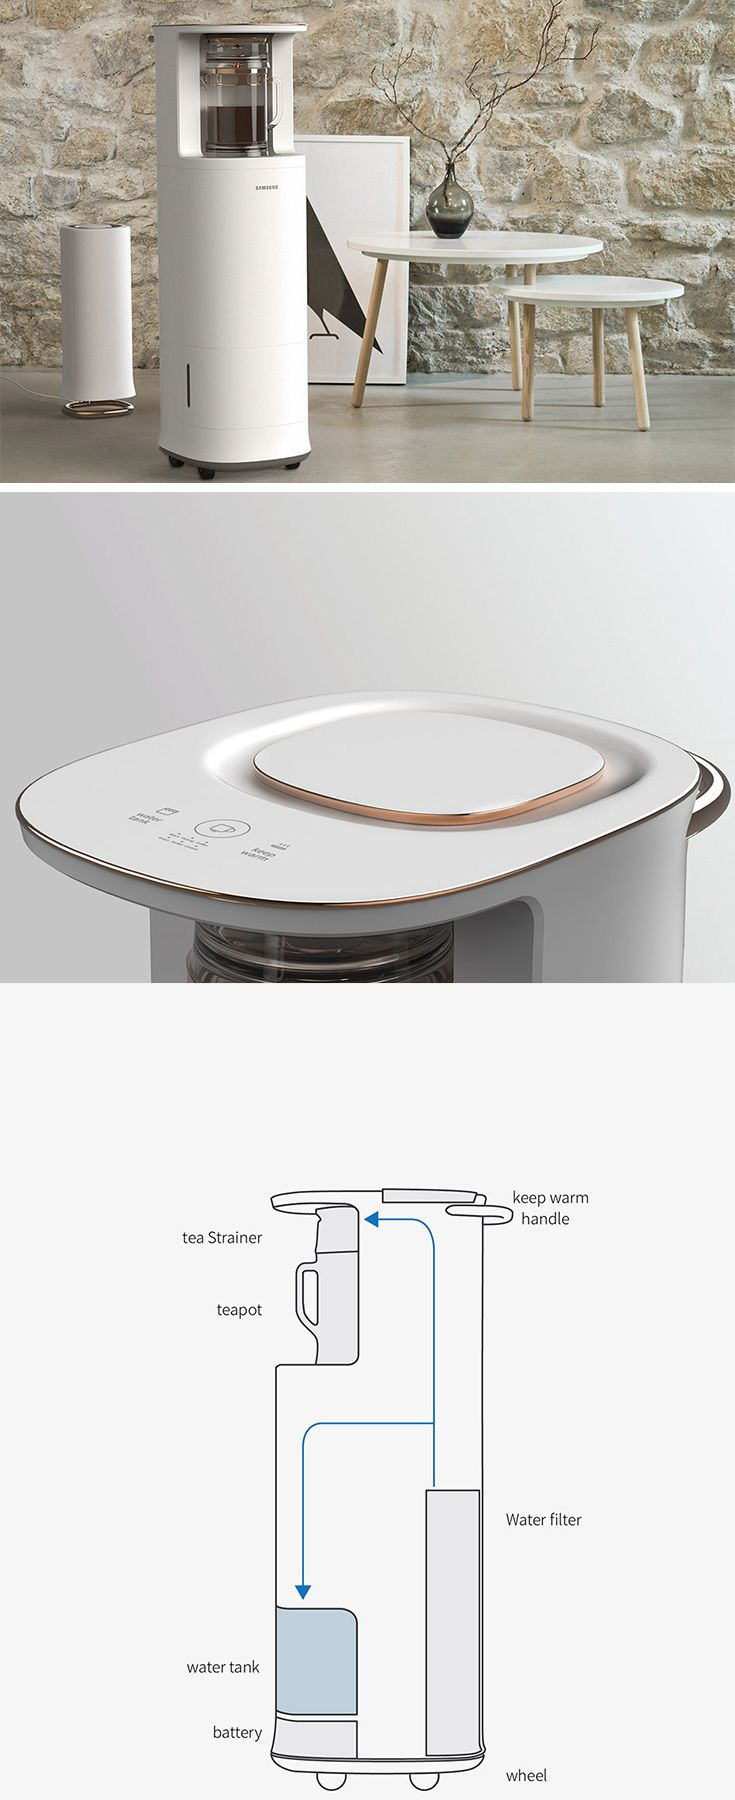 "Designed just for the Brits, ""Blendin"" is a modern twist on this age-old tradition that makes it easy to enjoy tea anytime, anywhere. Rather than take trips back and forth between the kitchen, users can move this convenient rolling system wherever they desire. With a built-in reservoir and heating system, it keeps tea fresh and piping hot."